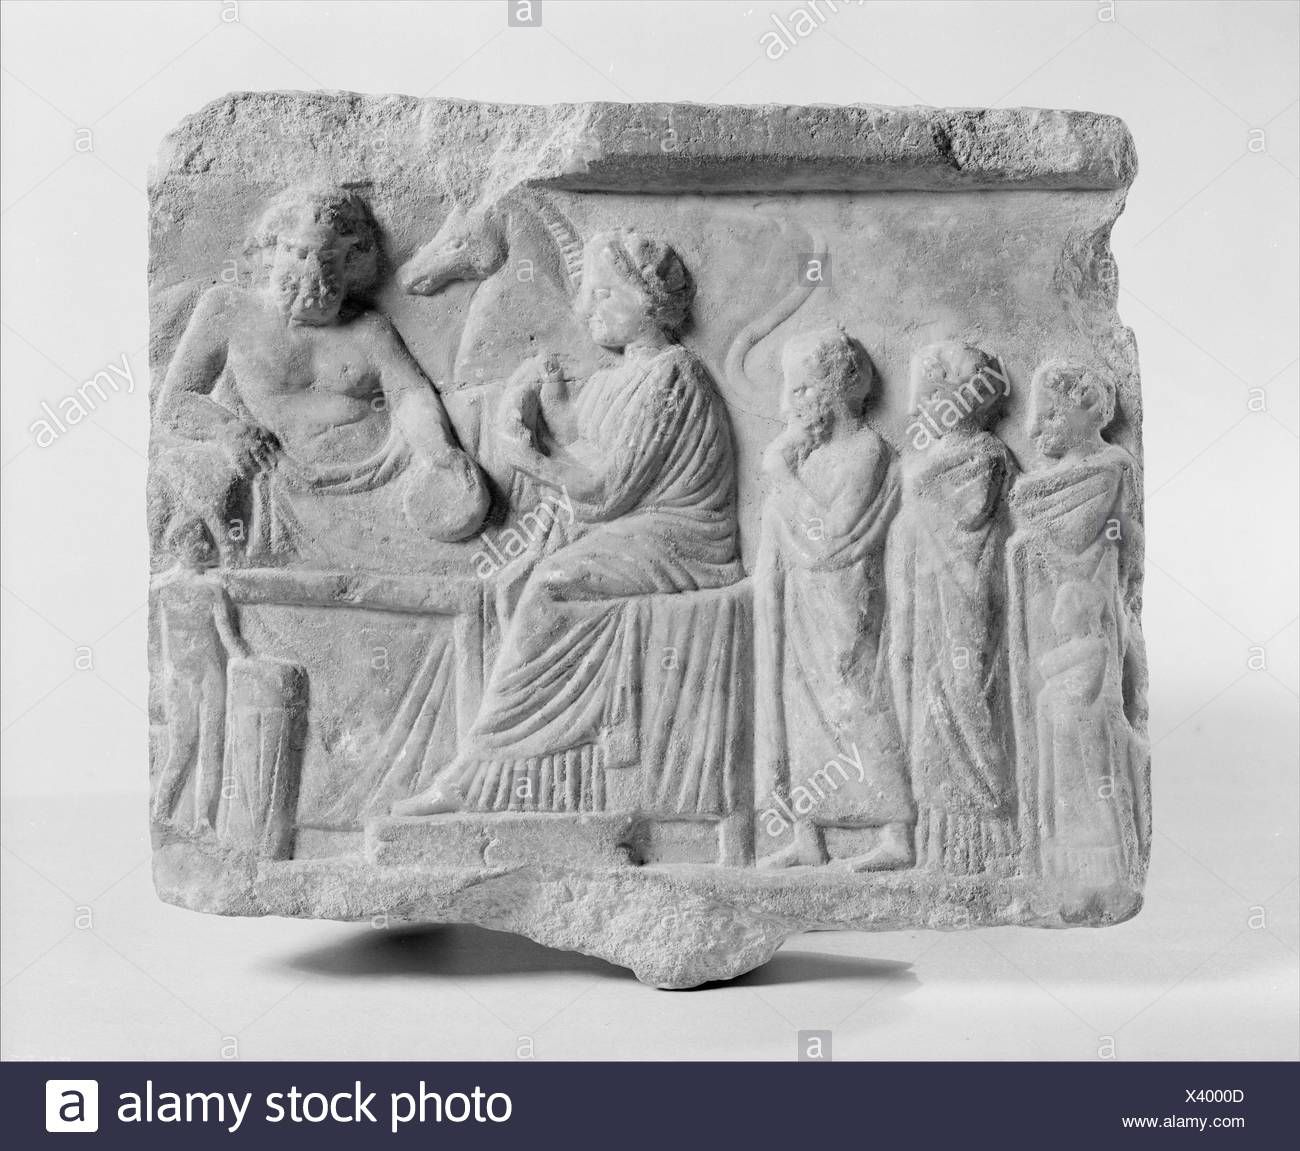 Marble votive relief dedicated to a hero. Period: Late Classical; Date: late 4th century B.C; Culture: Greek, Attic; Medium: Marble; Dimensions: - Stock Image